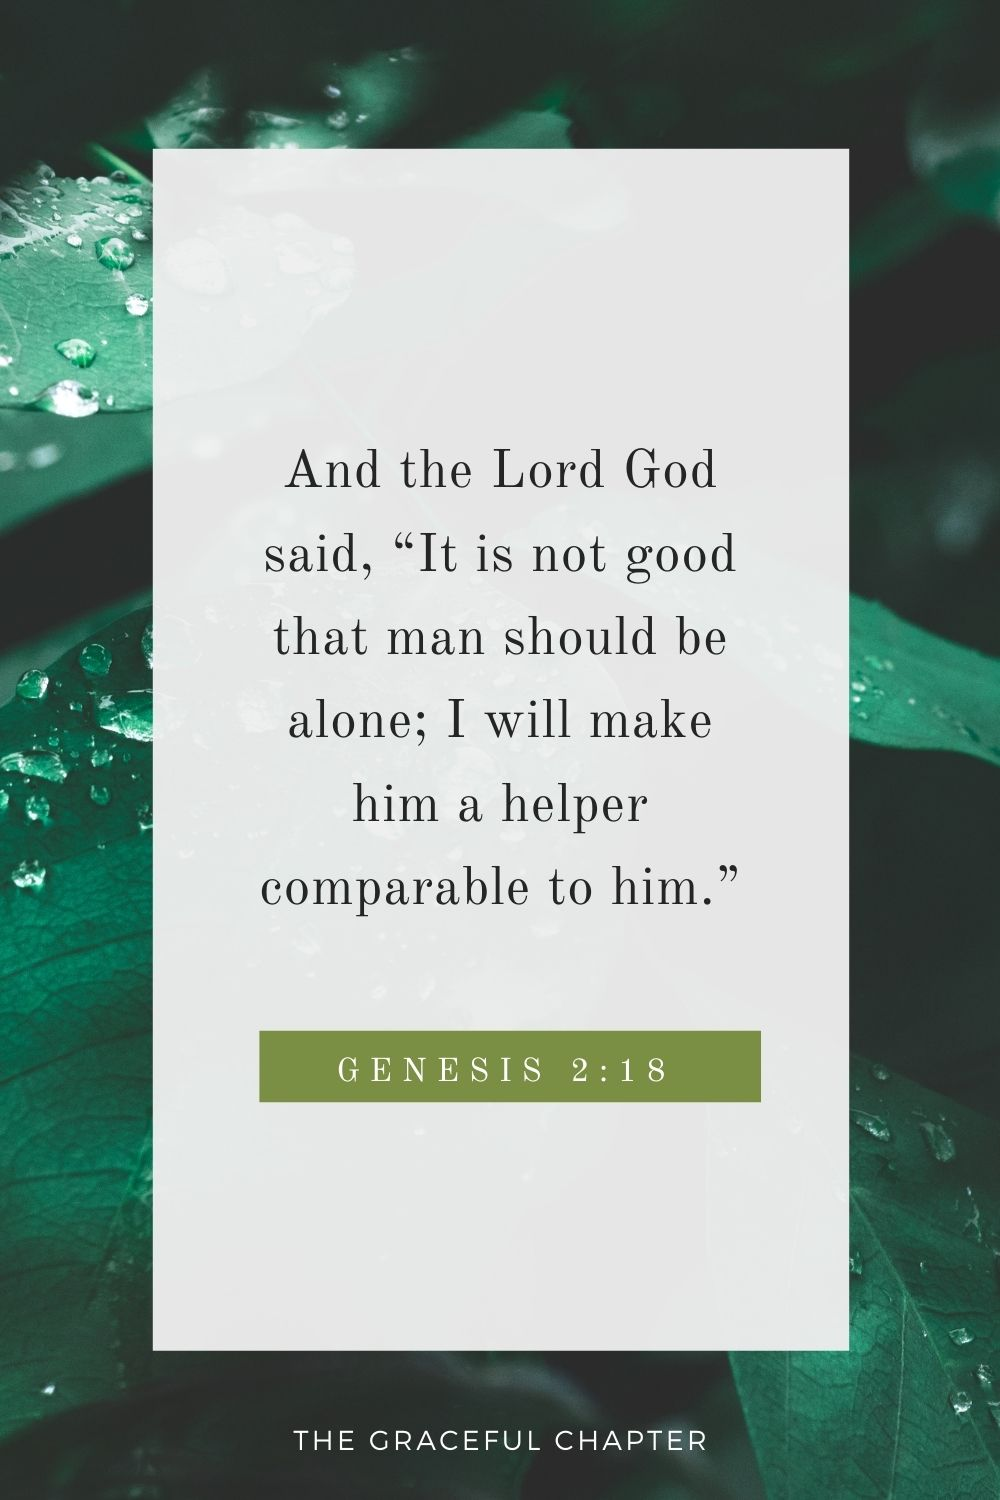 """And the Lord God said, """"It is not good that man should be alone; I will make him a helper comparable to him.""""And the Lord God said, """"It is not good that man should be alone; I will make him a helper comparable to him."""" Genesis 2:18"""